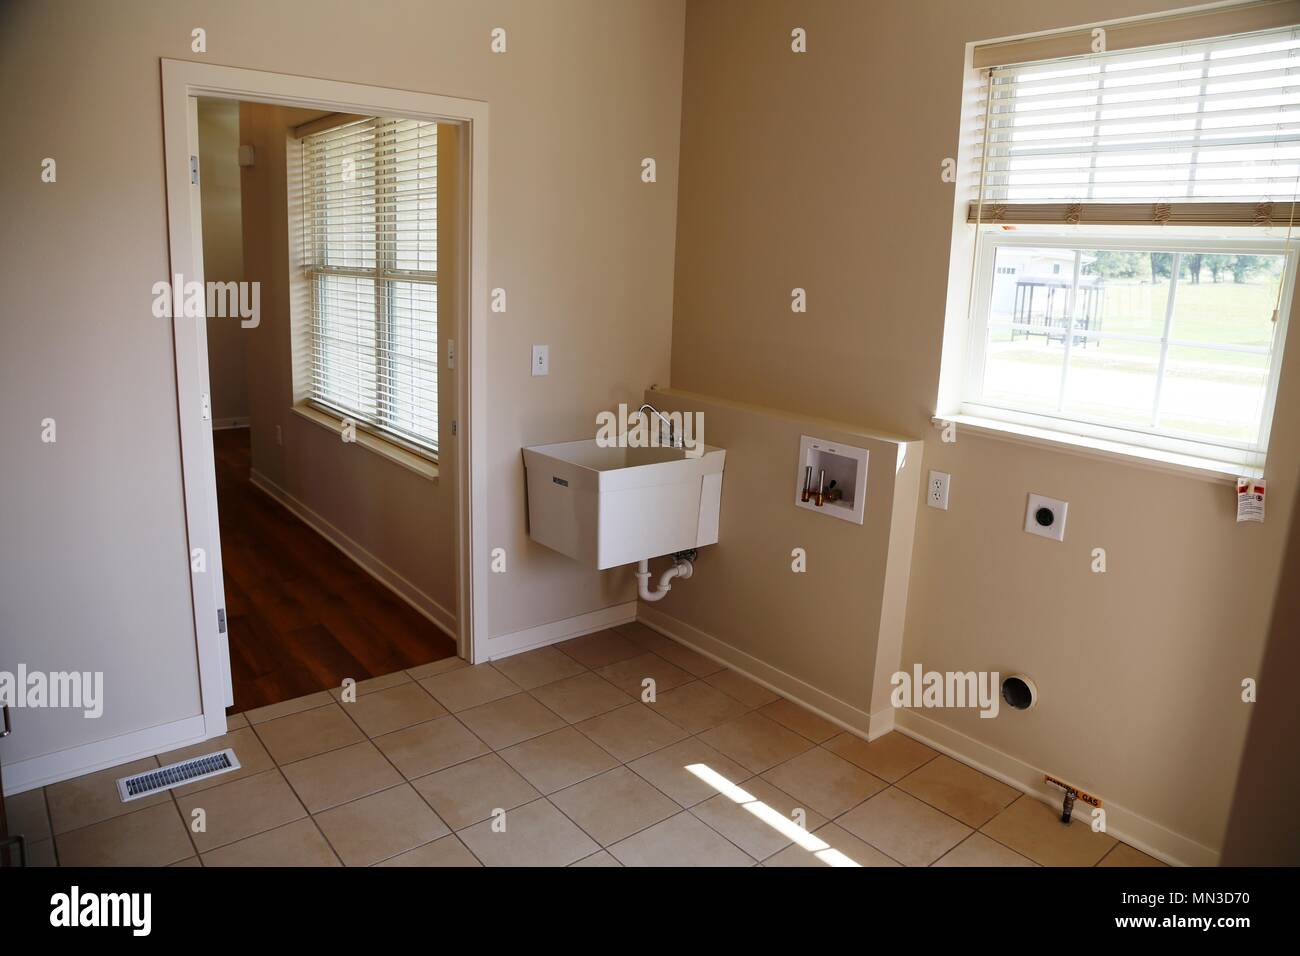 A Room Inside One Of 56 New Homes Built For South Post Housing At Fort Mccoy